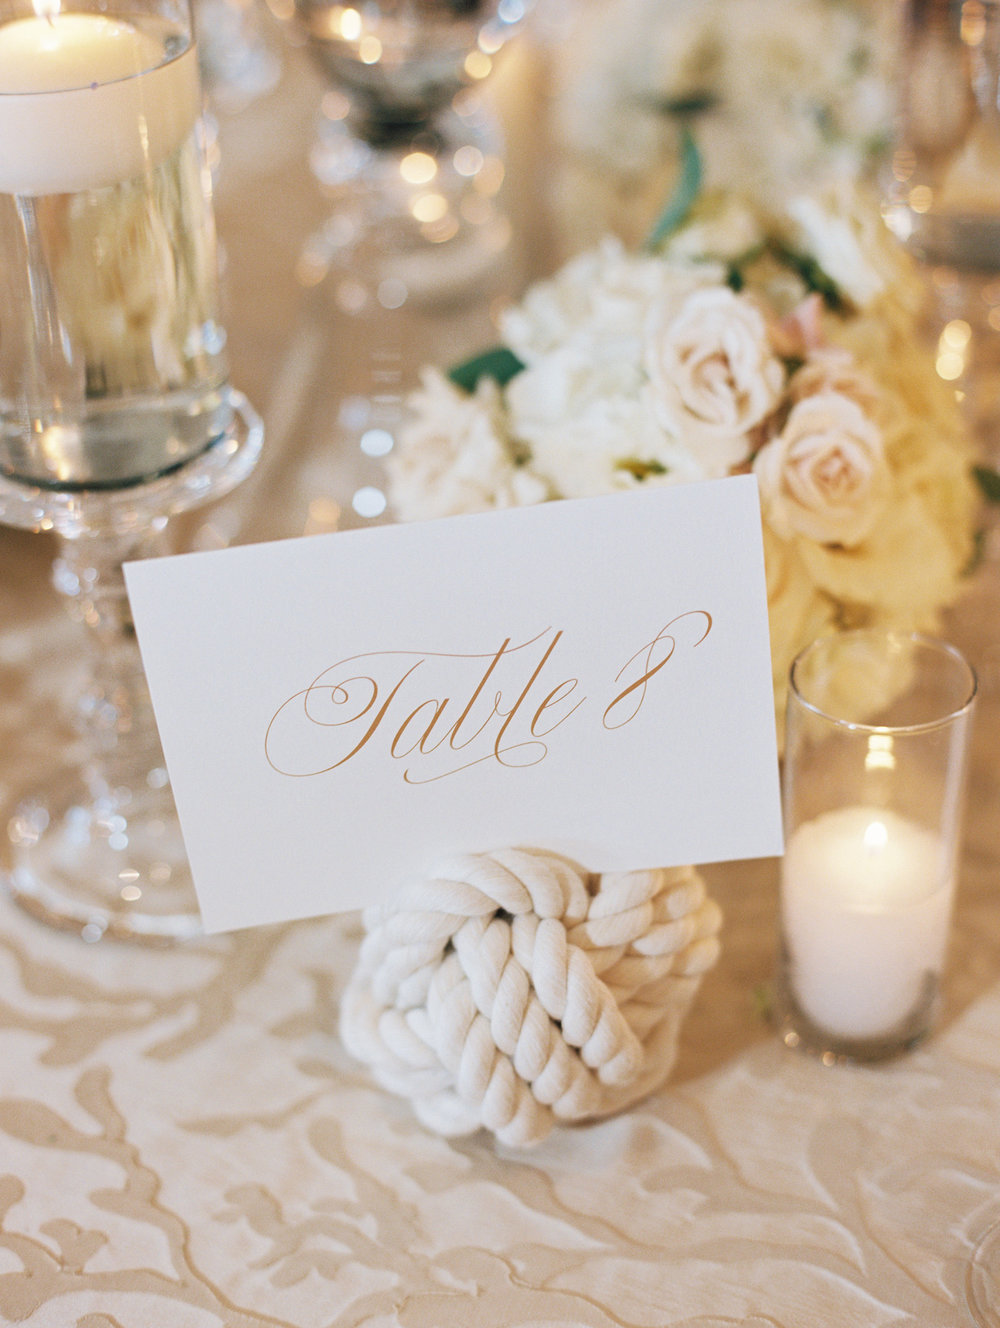 Stationary Details - Kiawah Island, South Carolina - Fall Wedding - Julian Leaver Events